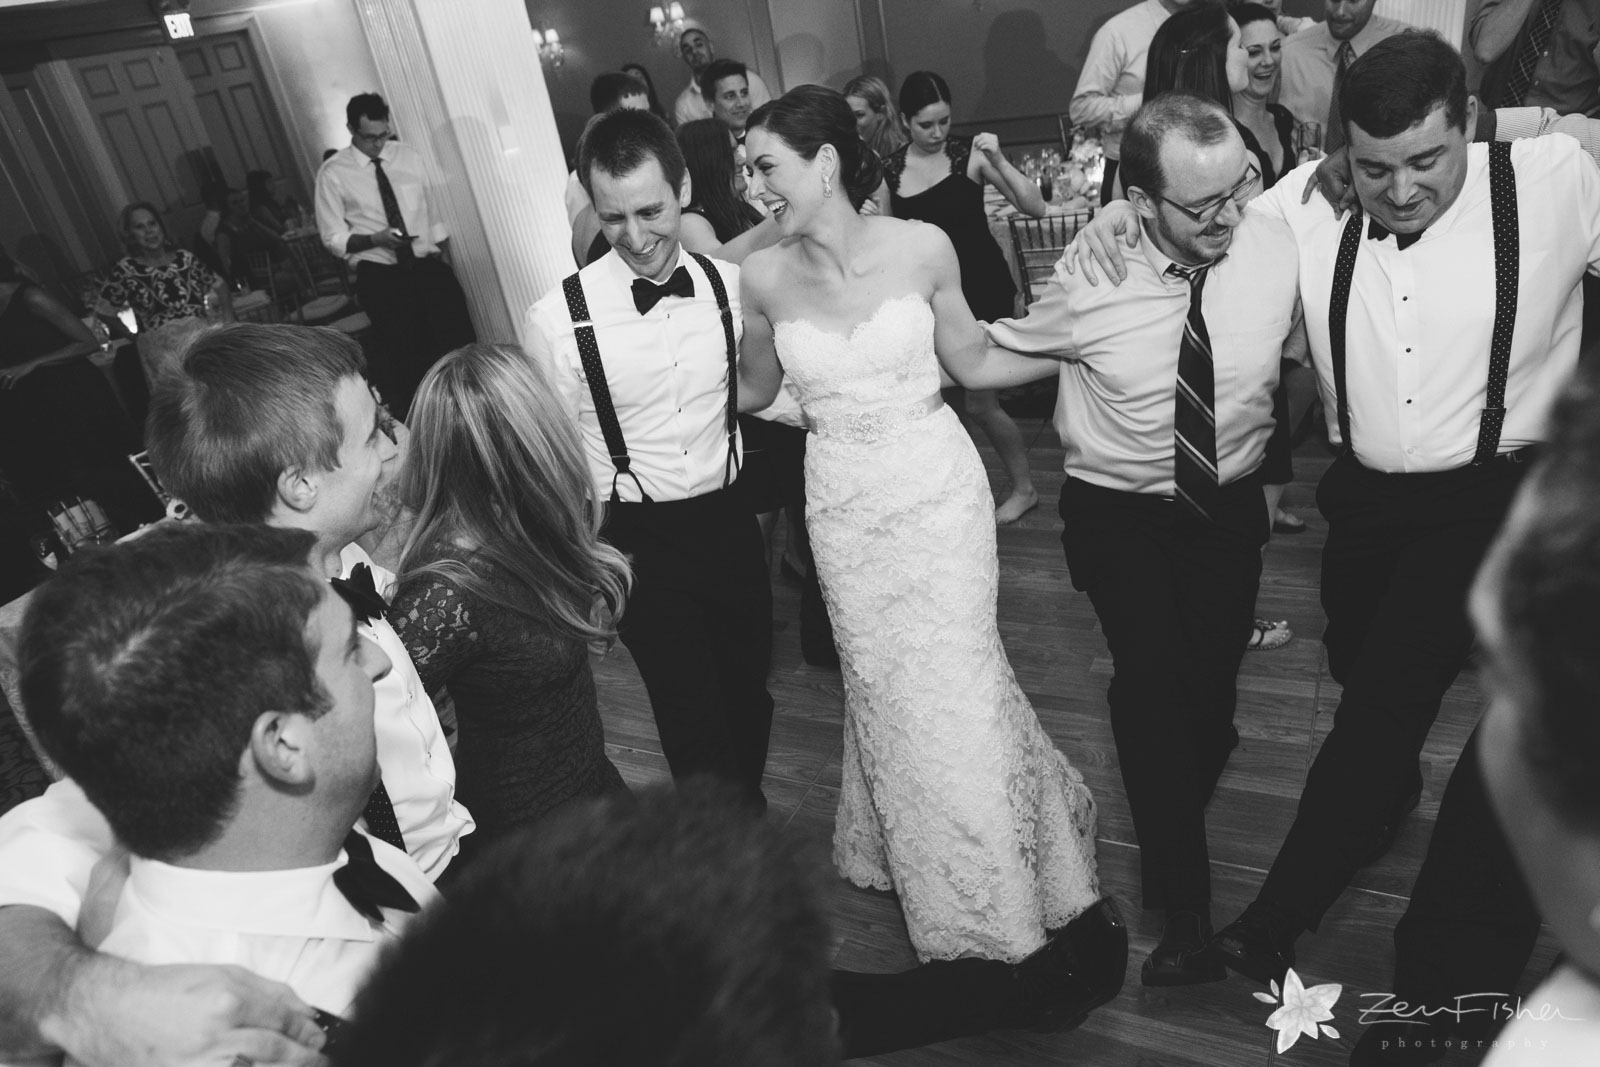 Bride, groom, and friends make a circle and dance together on the dance floor.